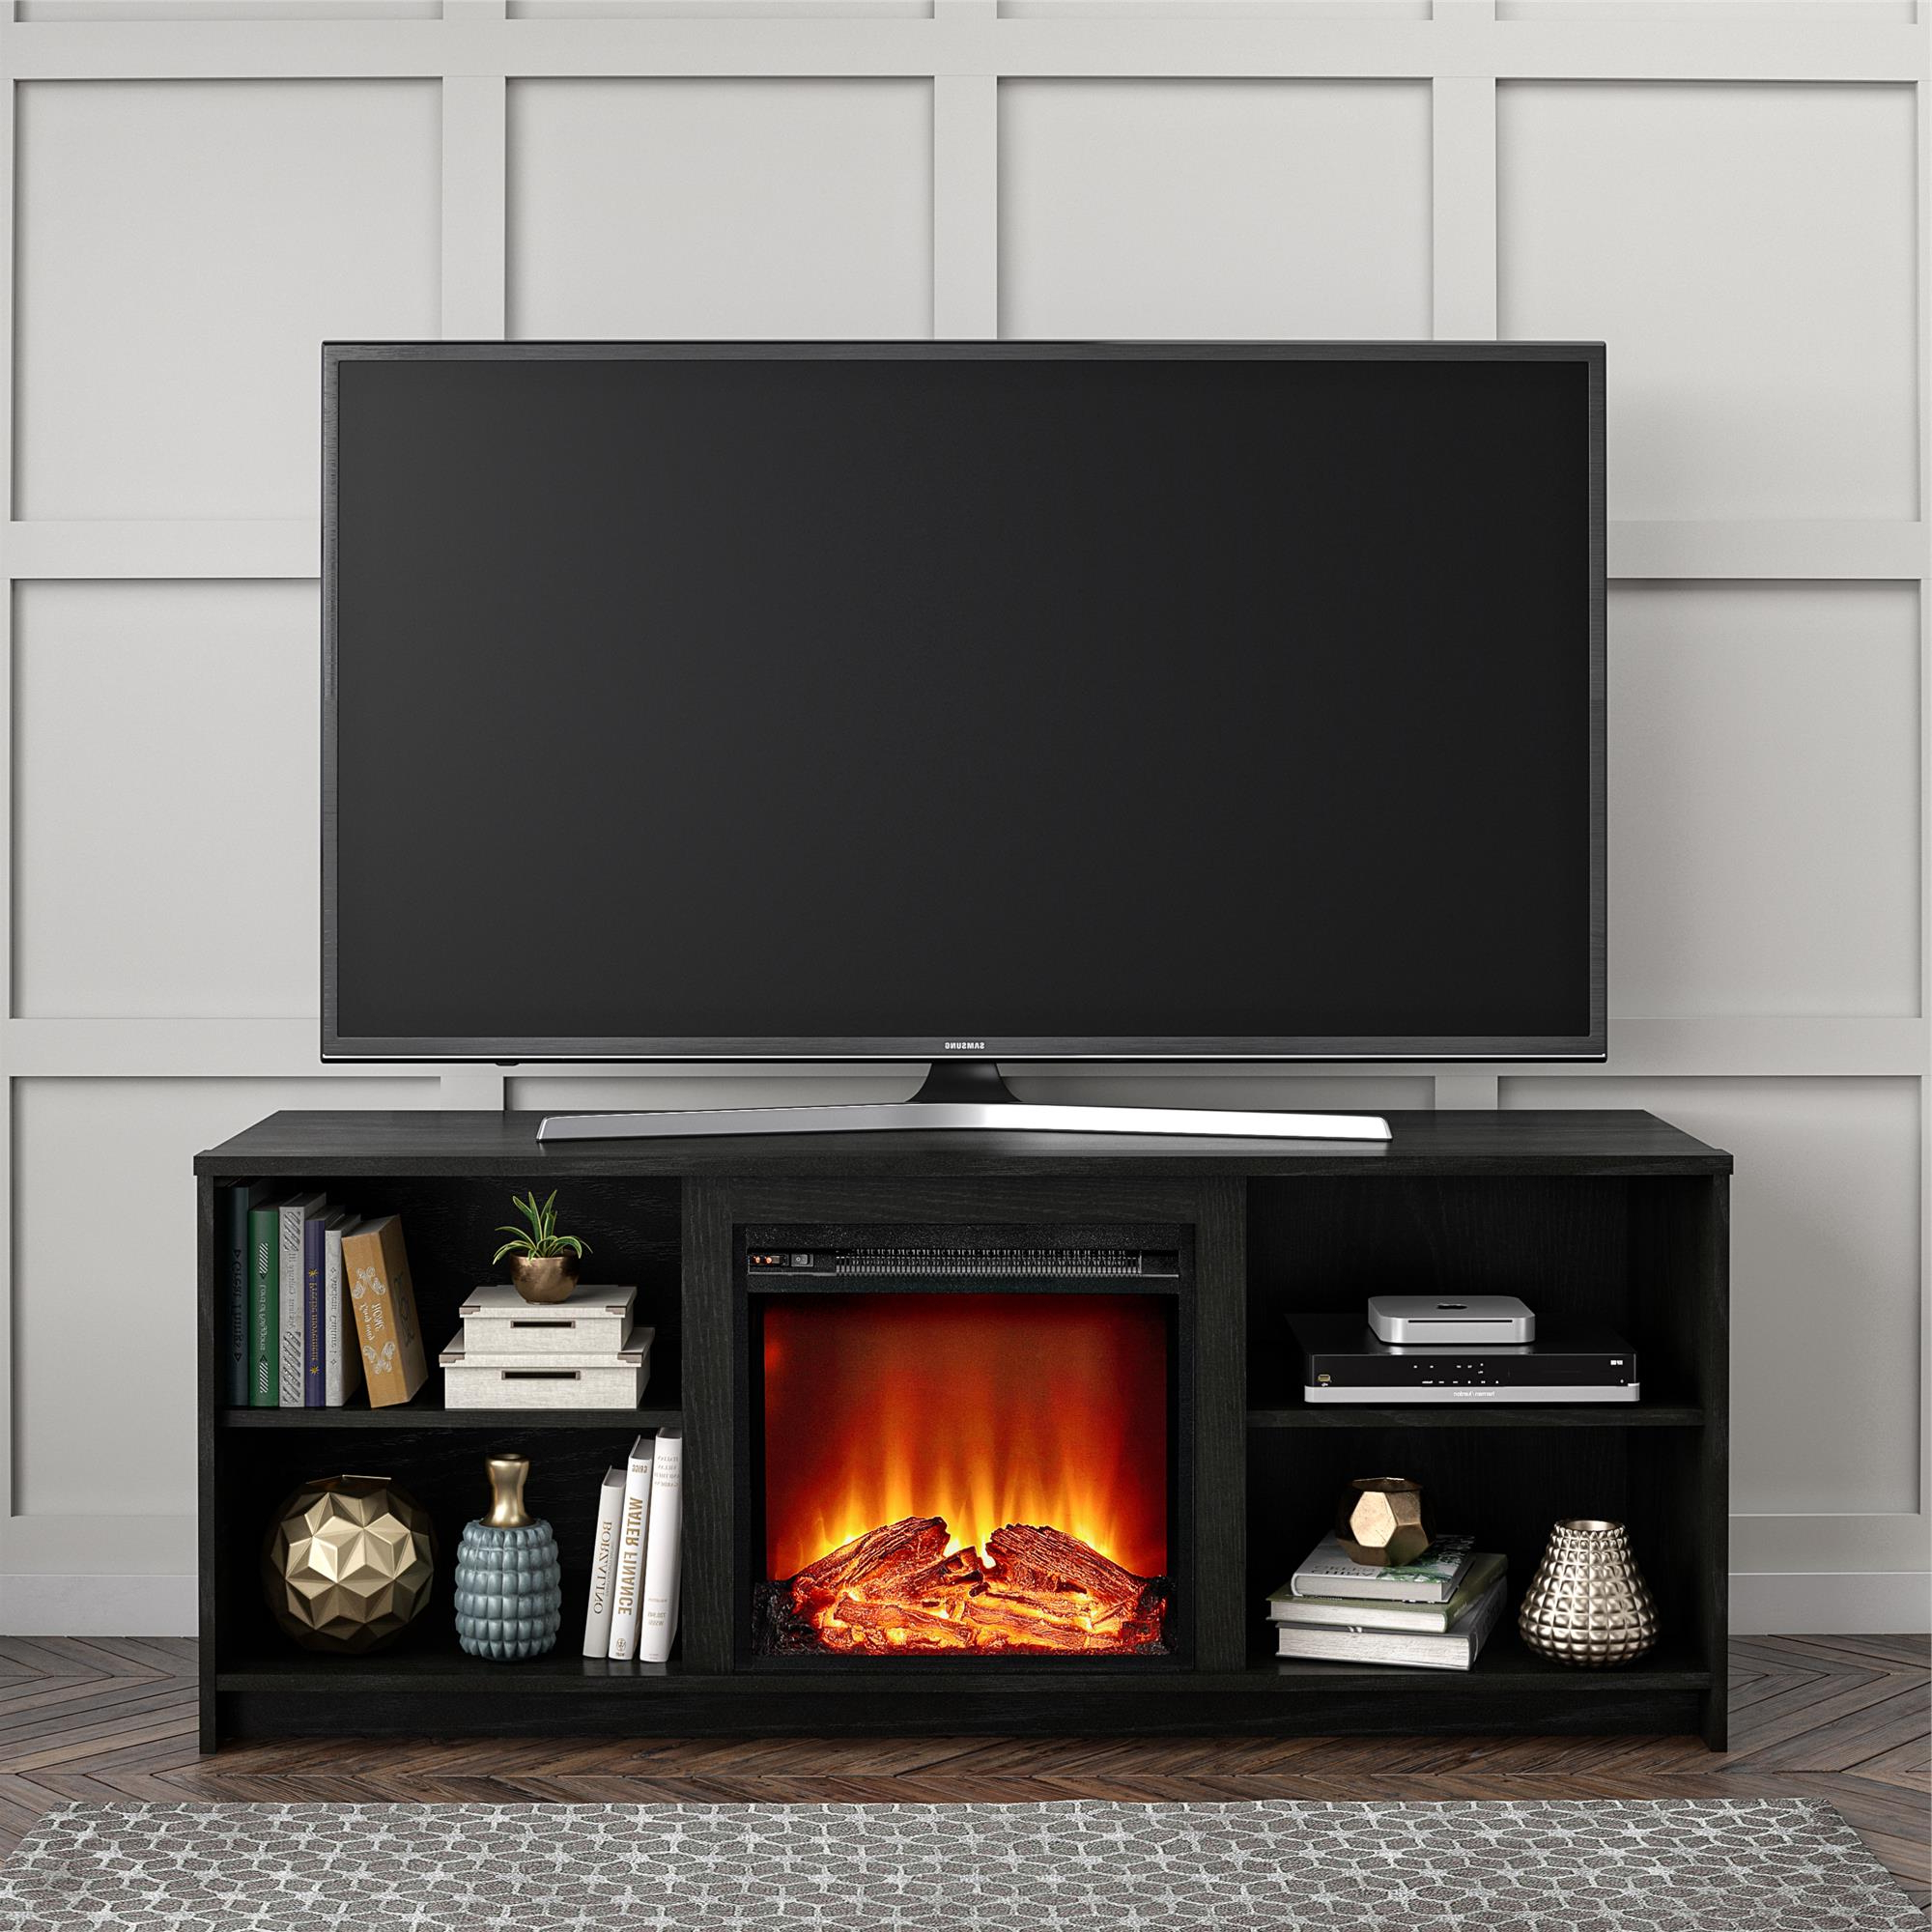 """Mainstays Fireplace Tv Stand For Tvs Up To 65"""", Black Oak Pertaining To Edgeware Black Tv Stands (View 9 of 20)"""